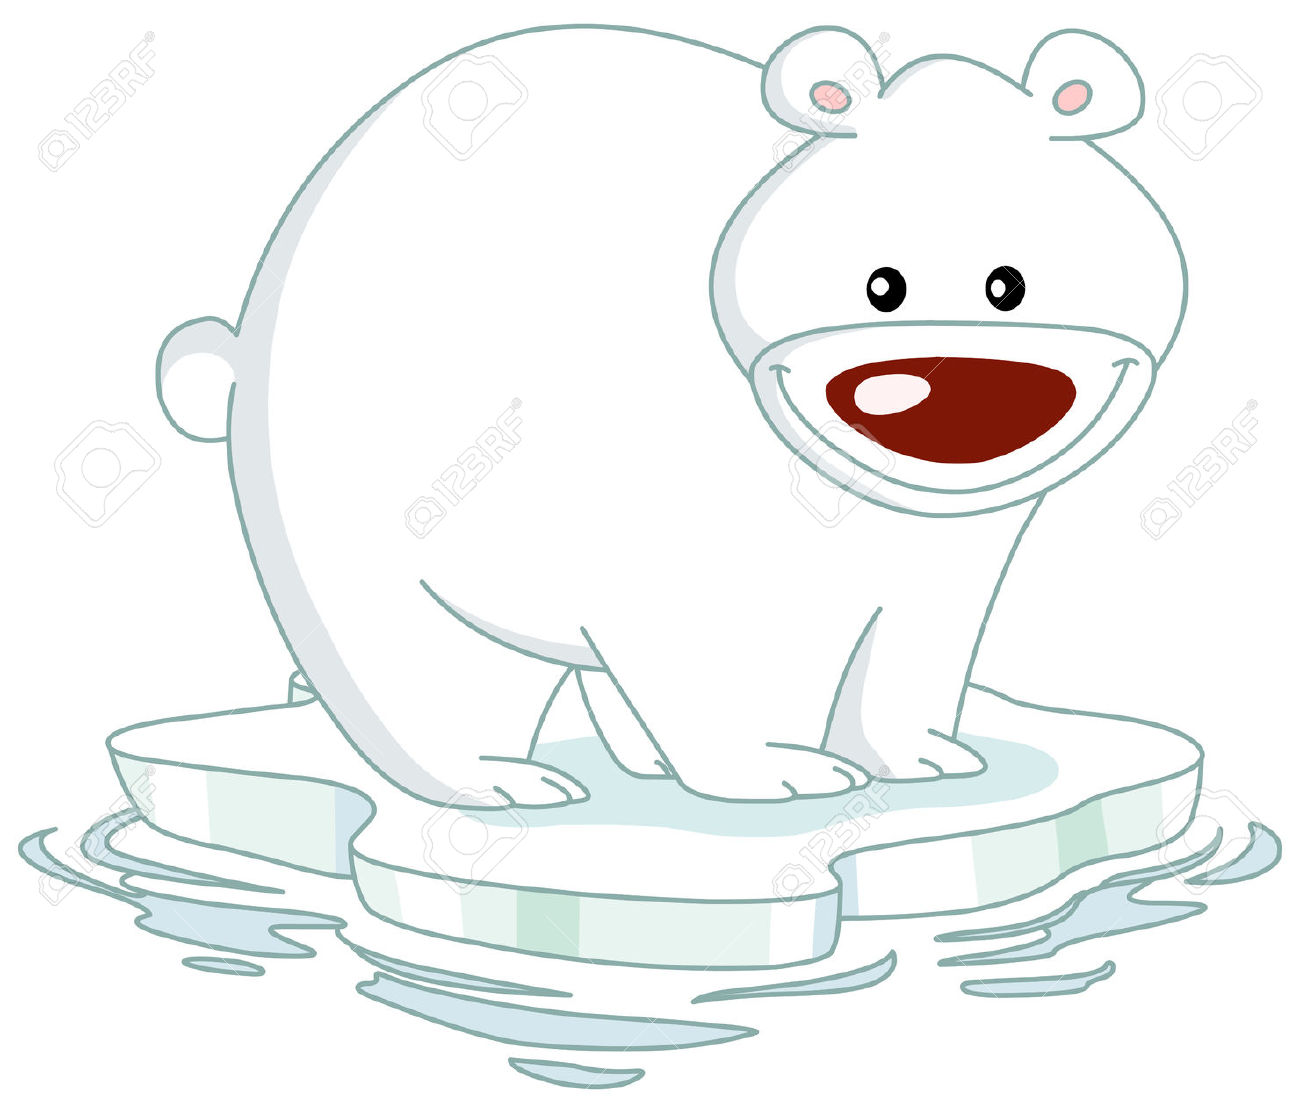 Icefloe clipart #20, Download drawings